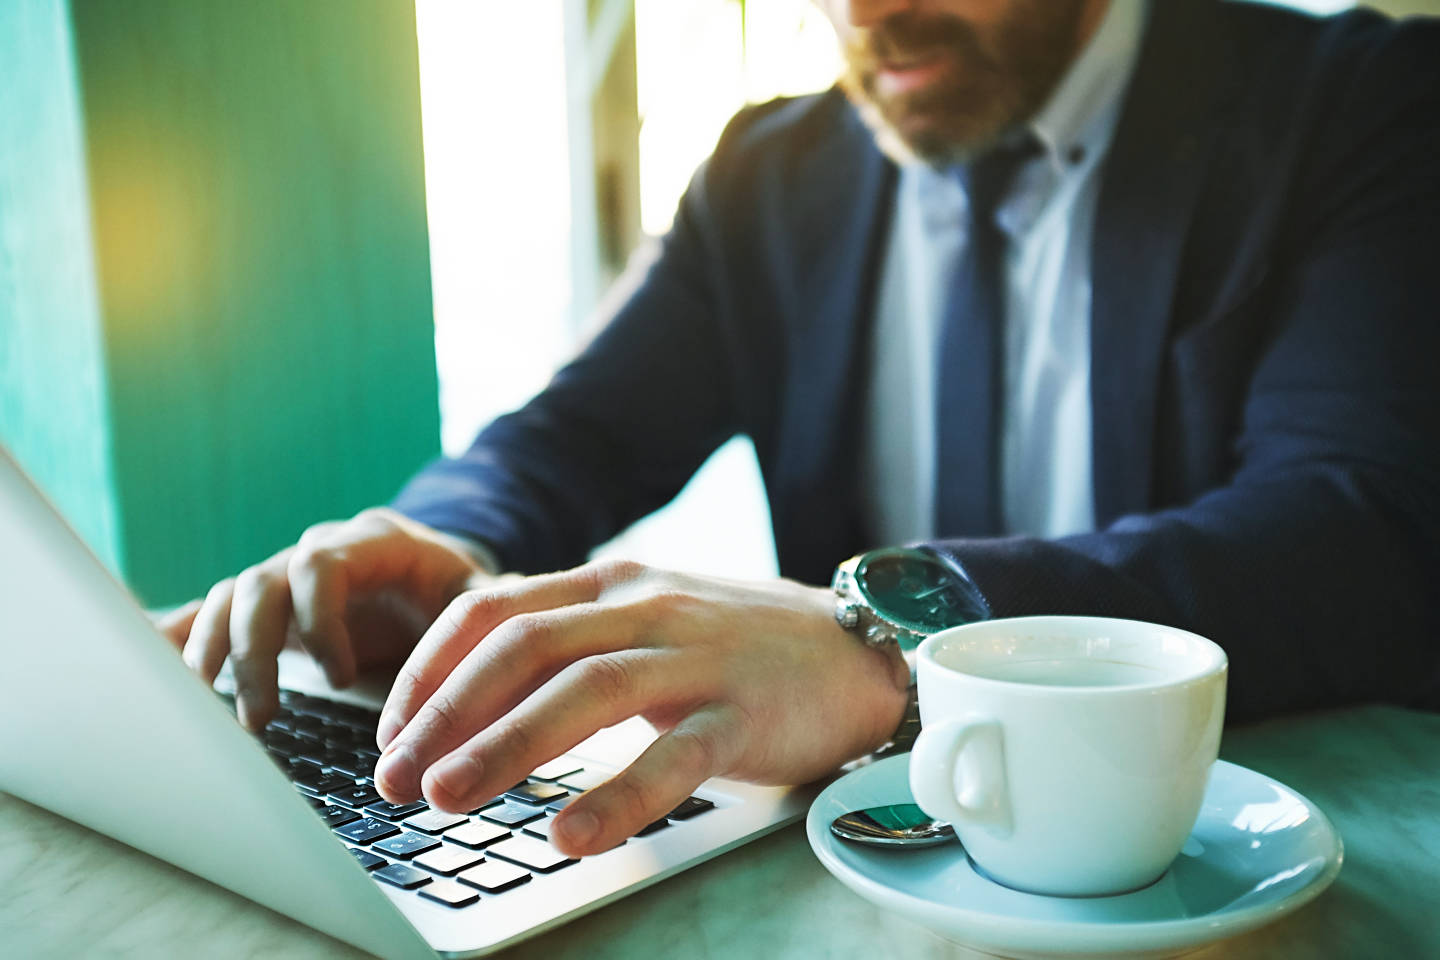 Hands of businessman typing with teacup near by